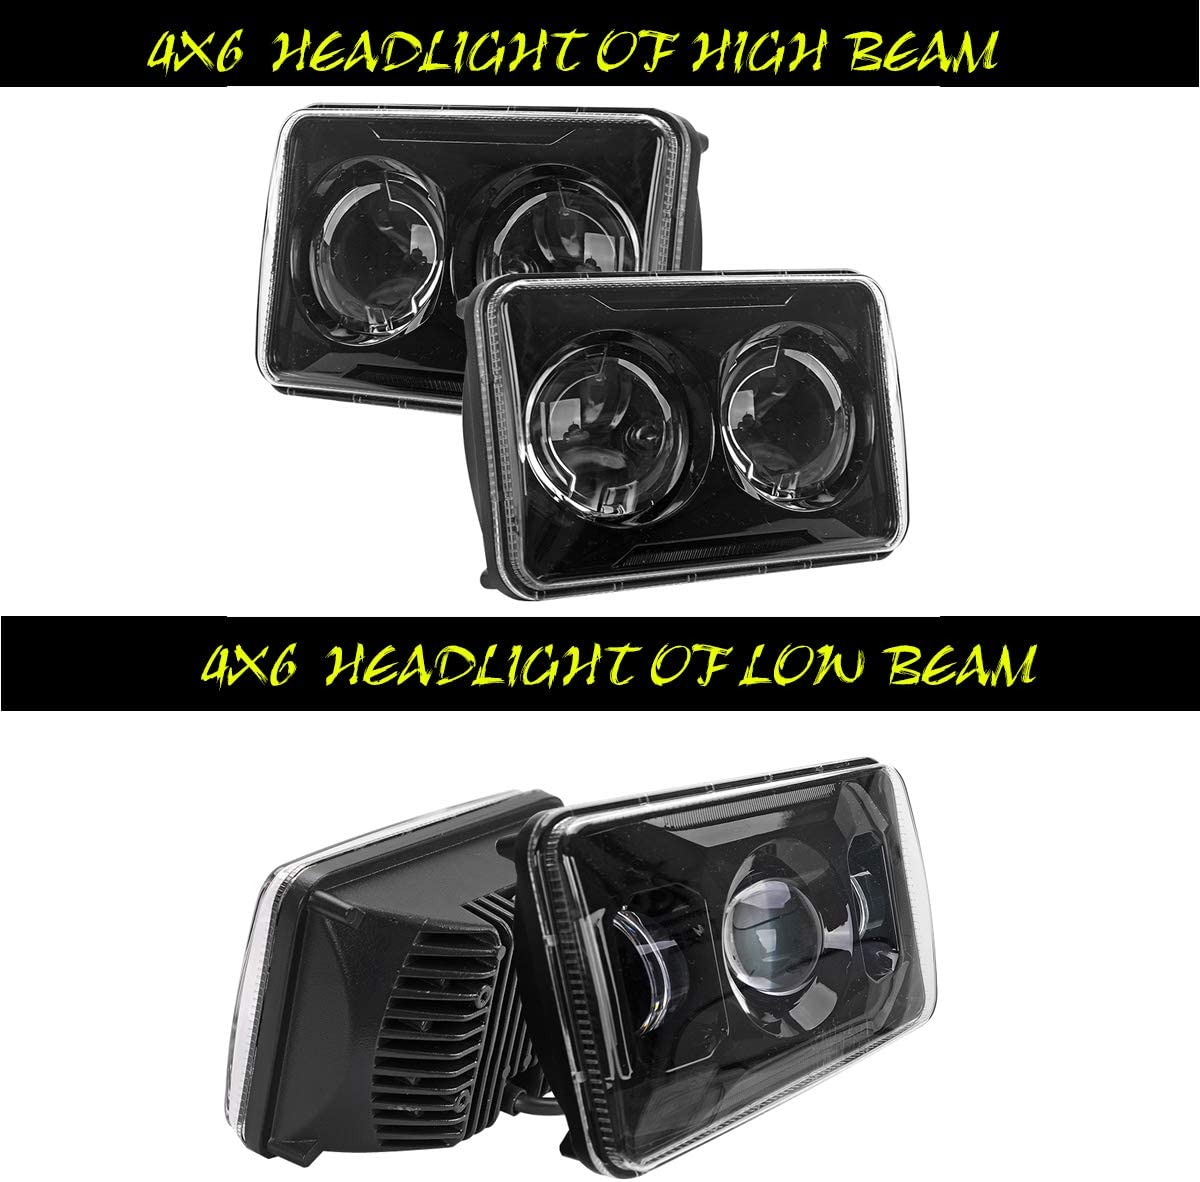 Scientific Hi//lo Beam Separately Replacement for Kenworth T800 T600 Peterbilt 379 Feightliner Oldsmobile Cutlass H4651 H4652 H4656 H4666 H6545 Black DOT Approved 60W 4x6 inch LED Headlights